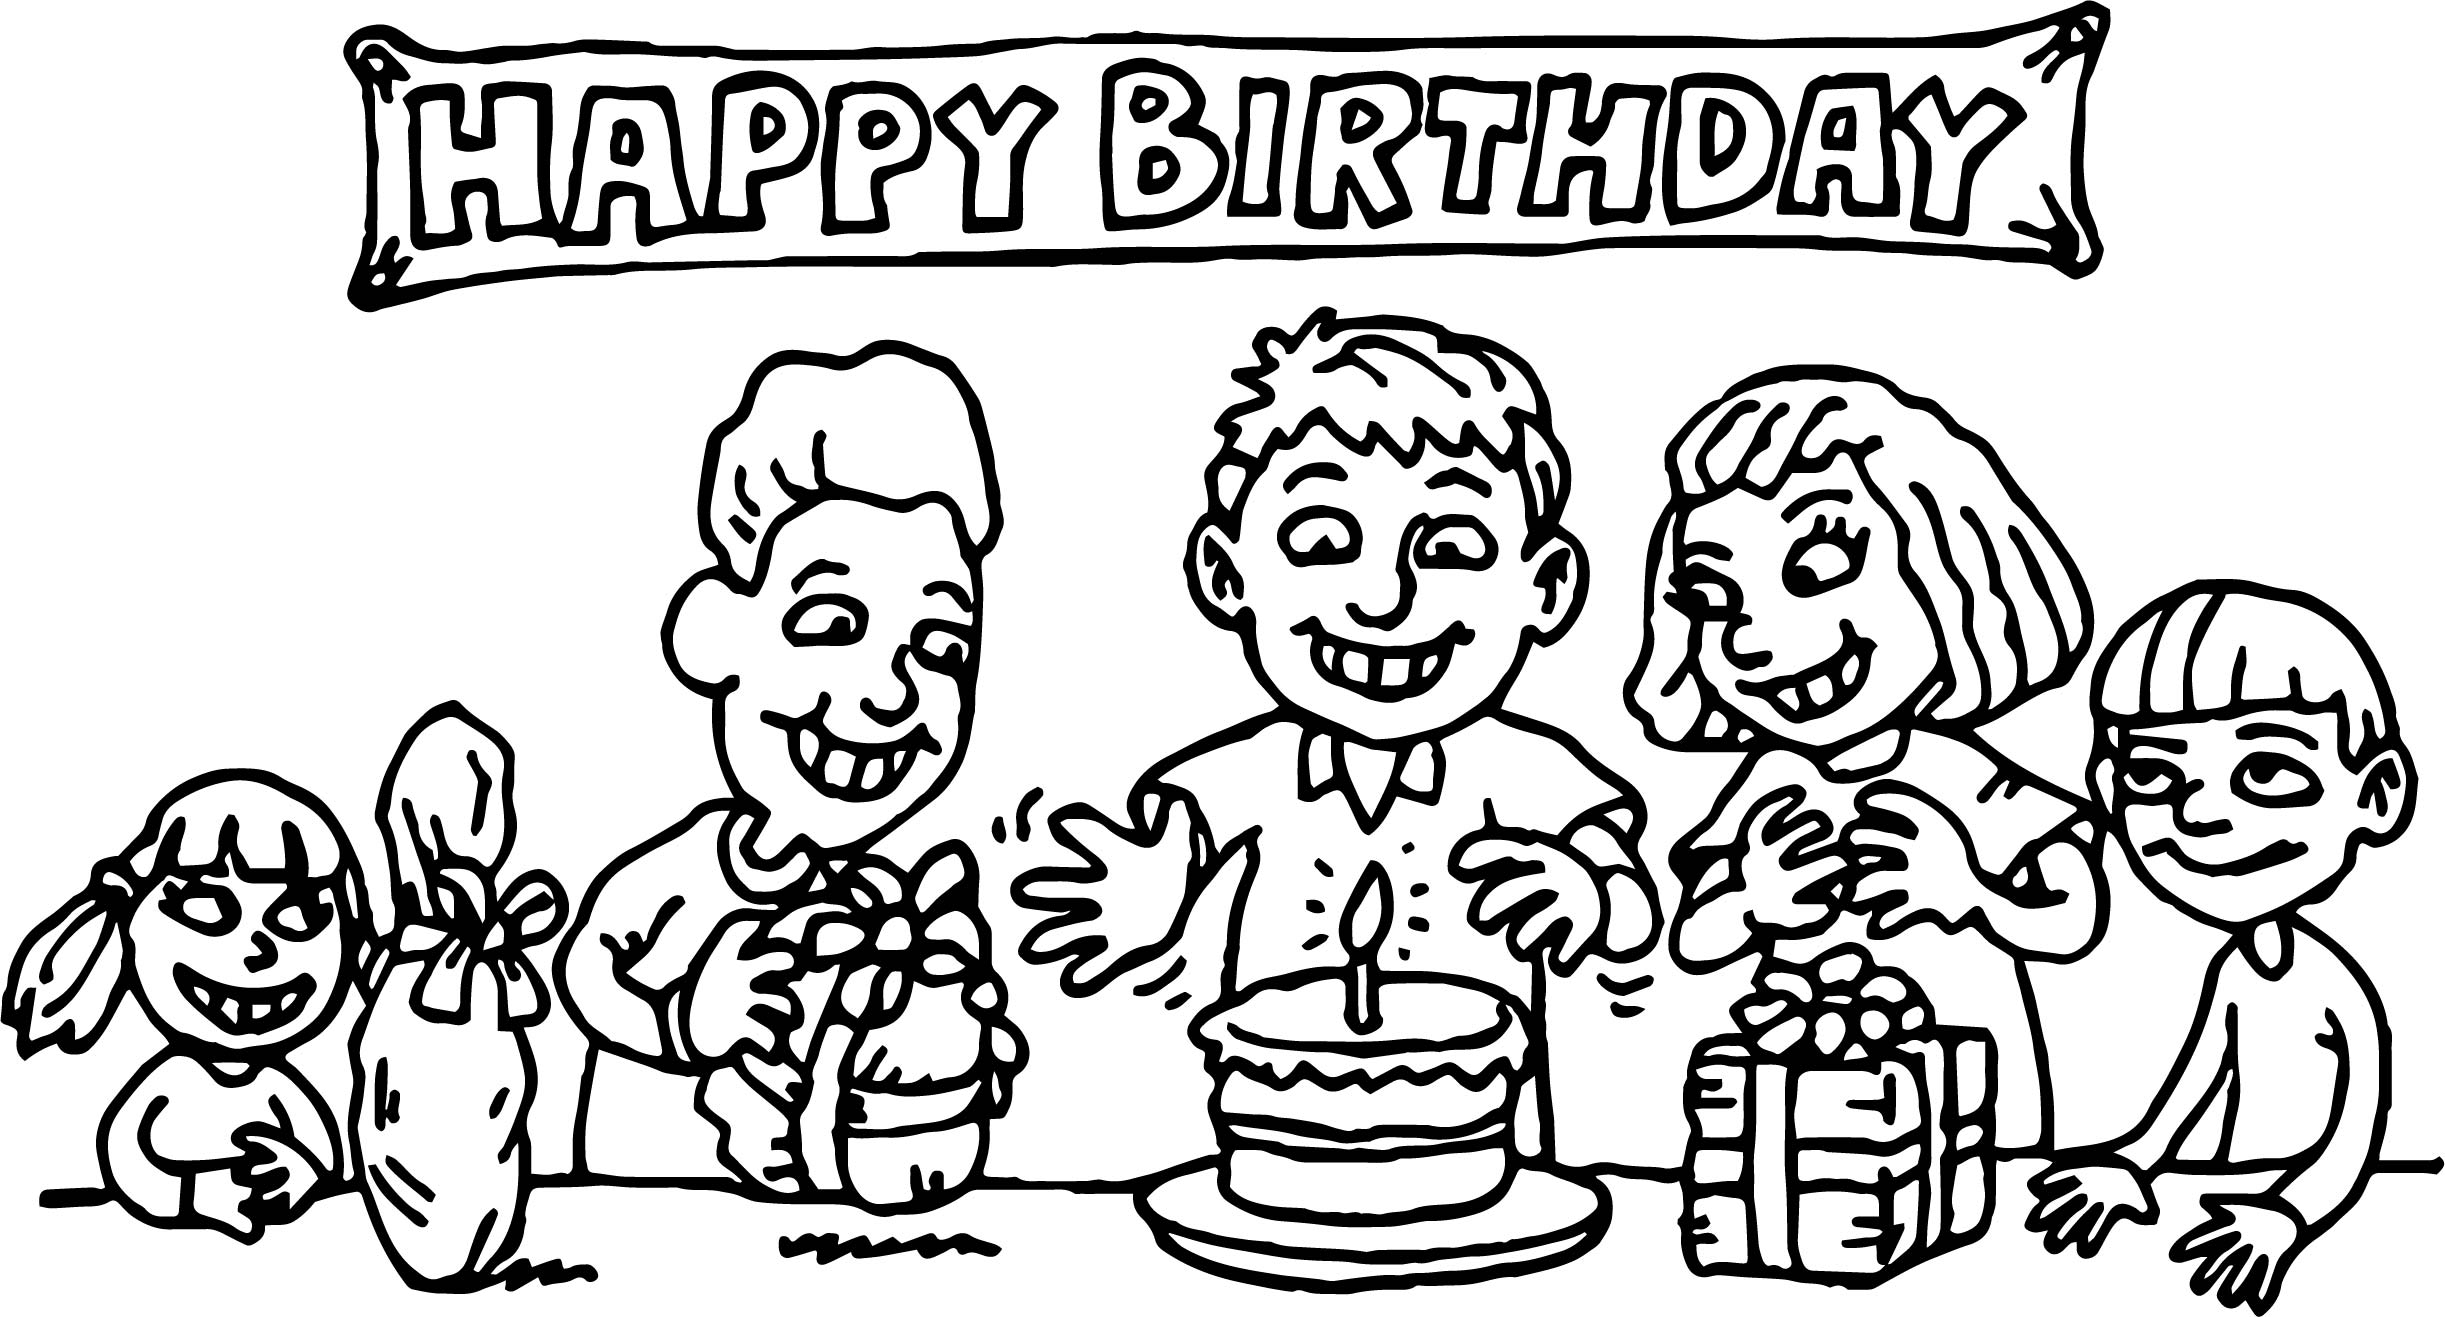 Kids Birthday Party Coloring Page | Wecoloringpage